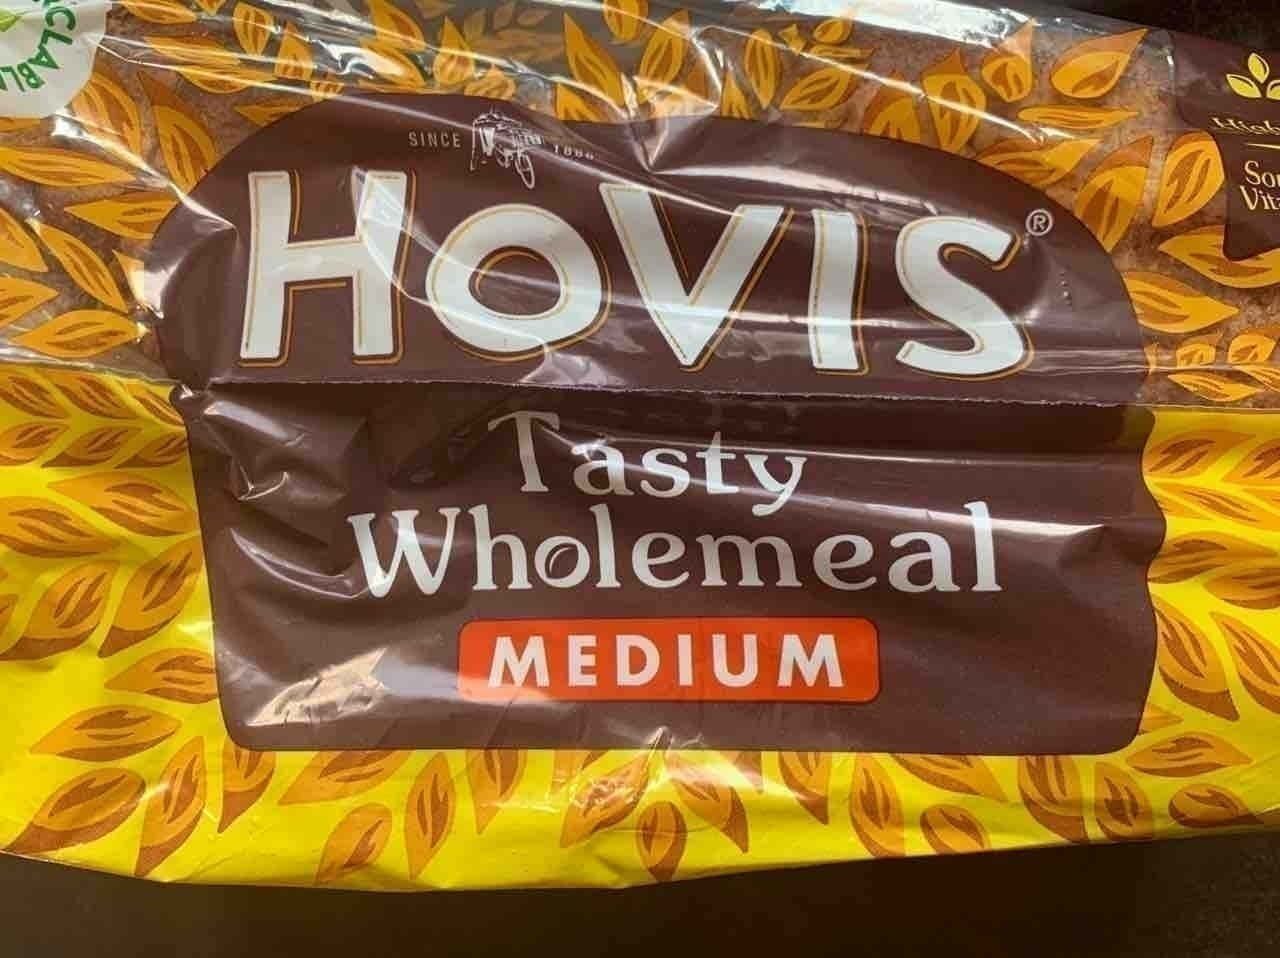 Hovis tasty whole meal sliced bread (lots)